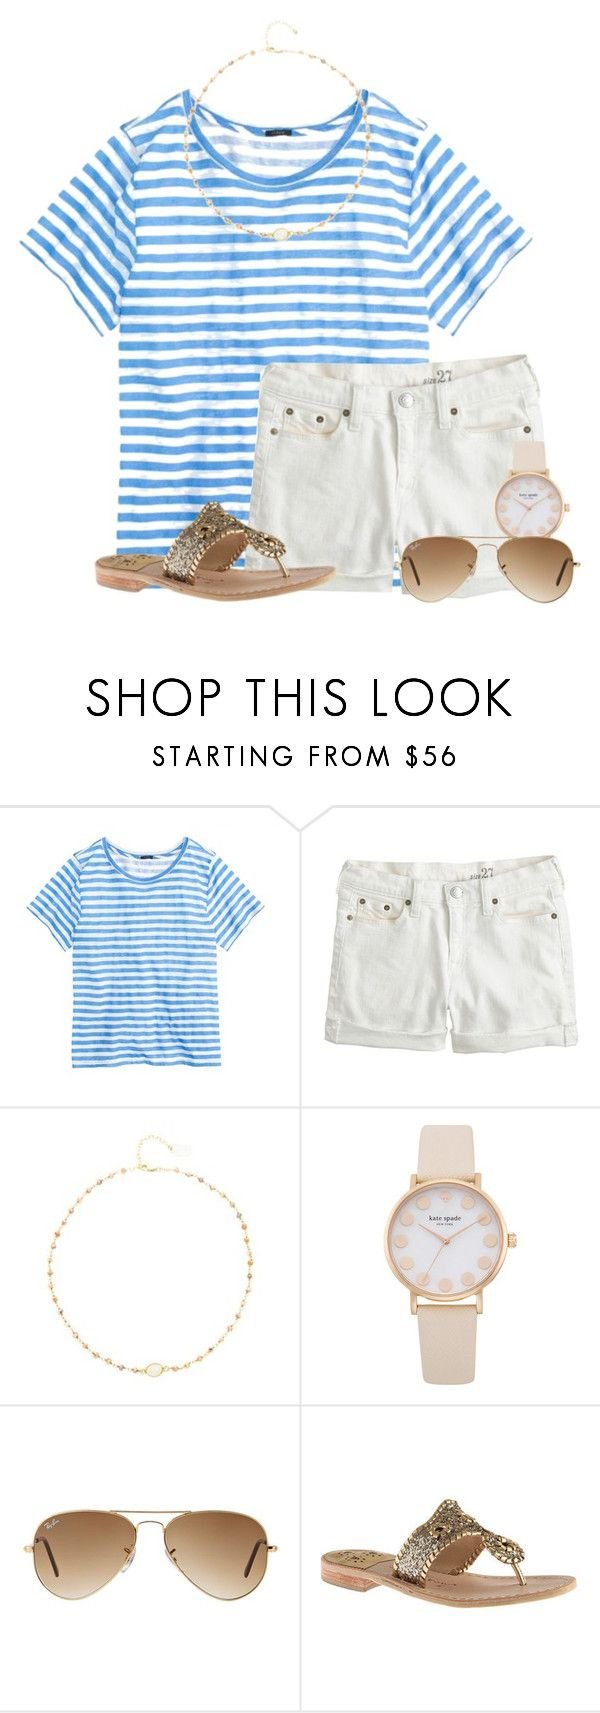 """""""My savior loves☀️"""" by flroasburn ❤ liked on Polyvore featuring J.Crew, Ela Rae, Ray-Ban and Jack Rogers"""